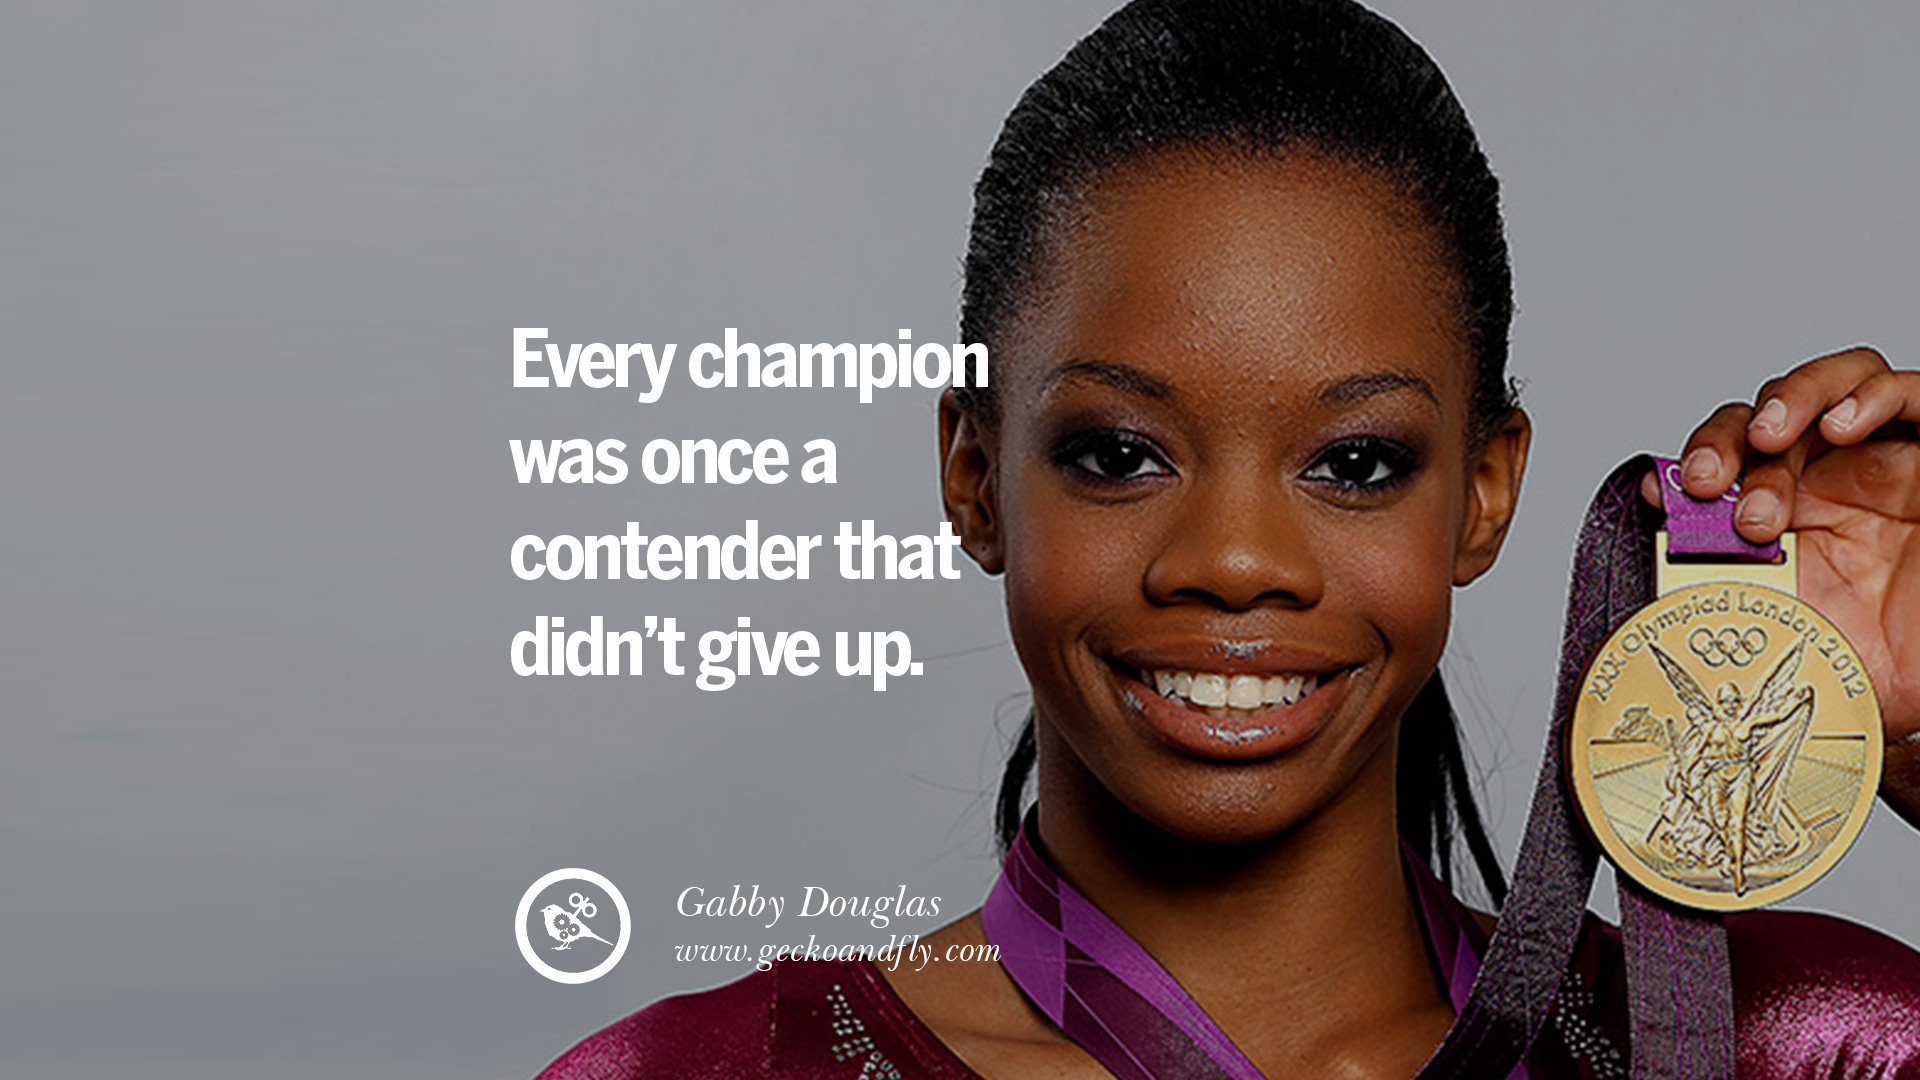 31 Inspirational Quotes By Olympic Athletes On The Spirit Of Sportsmanship